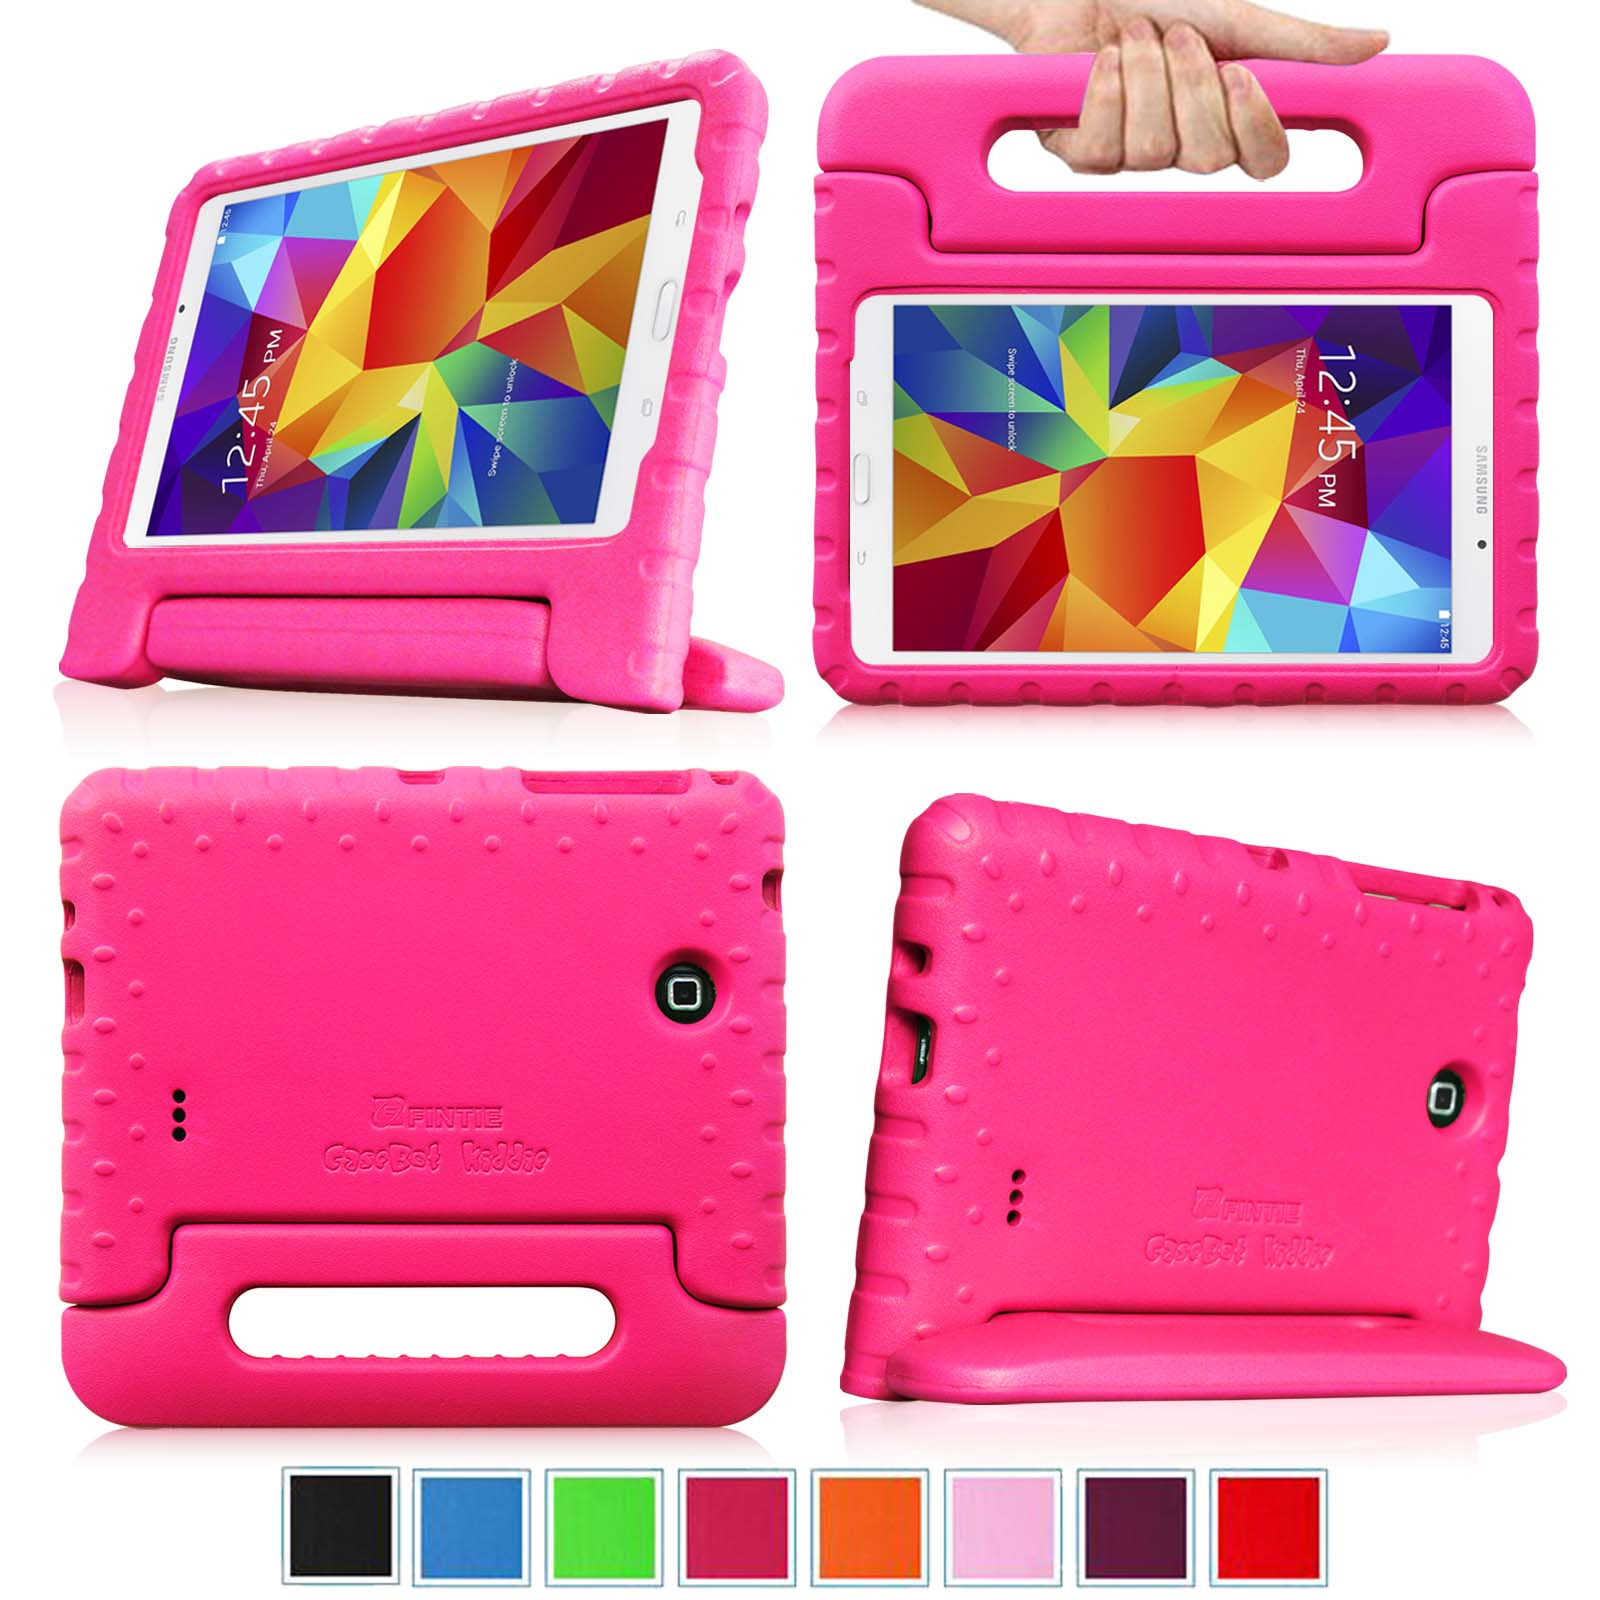 Samsung Galaxy Tab 4 7.0 Inch Case - Fintie Lightweight Shockproof Convertible Handle Stand Cover Kids Friendly, Magenta